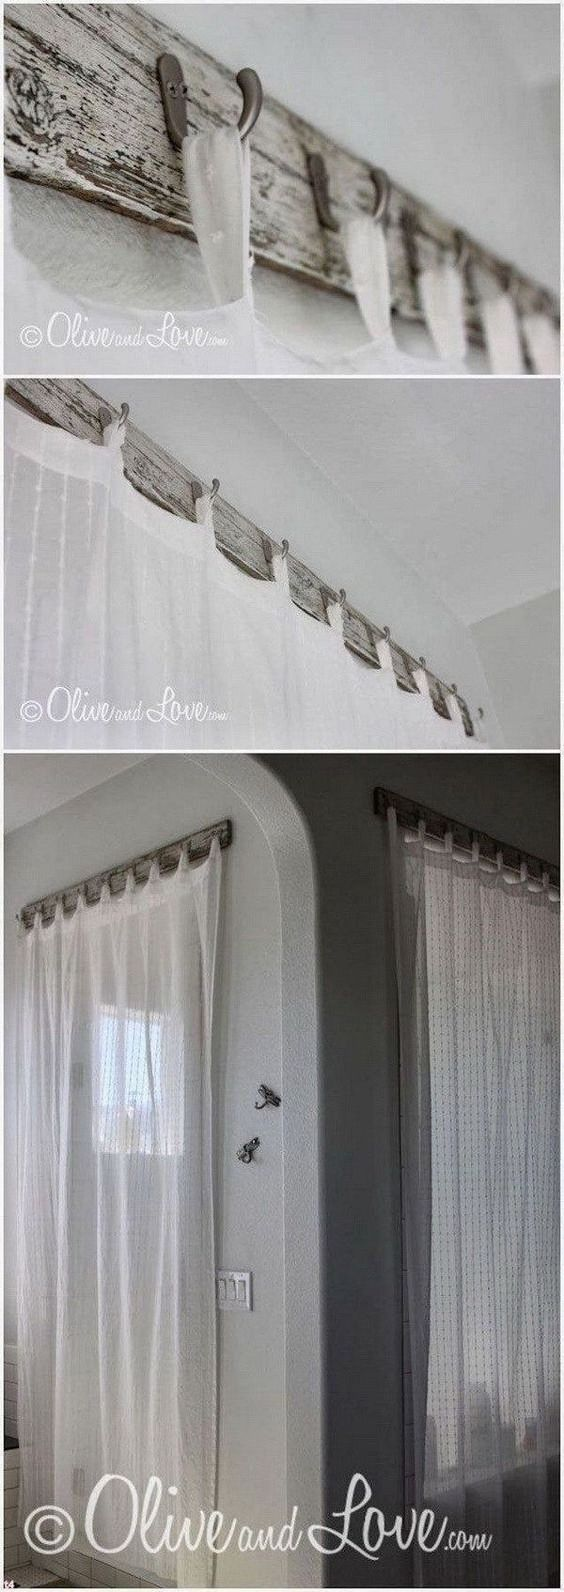 Create Your Own Curtain Hangers - A DIY Project